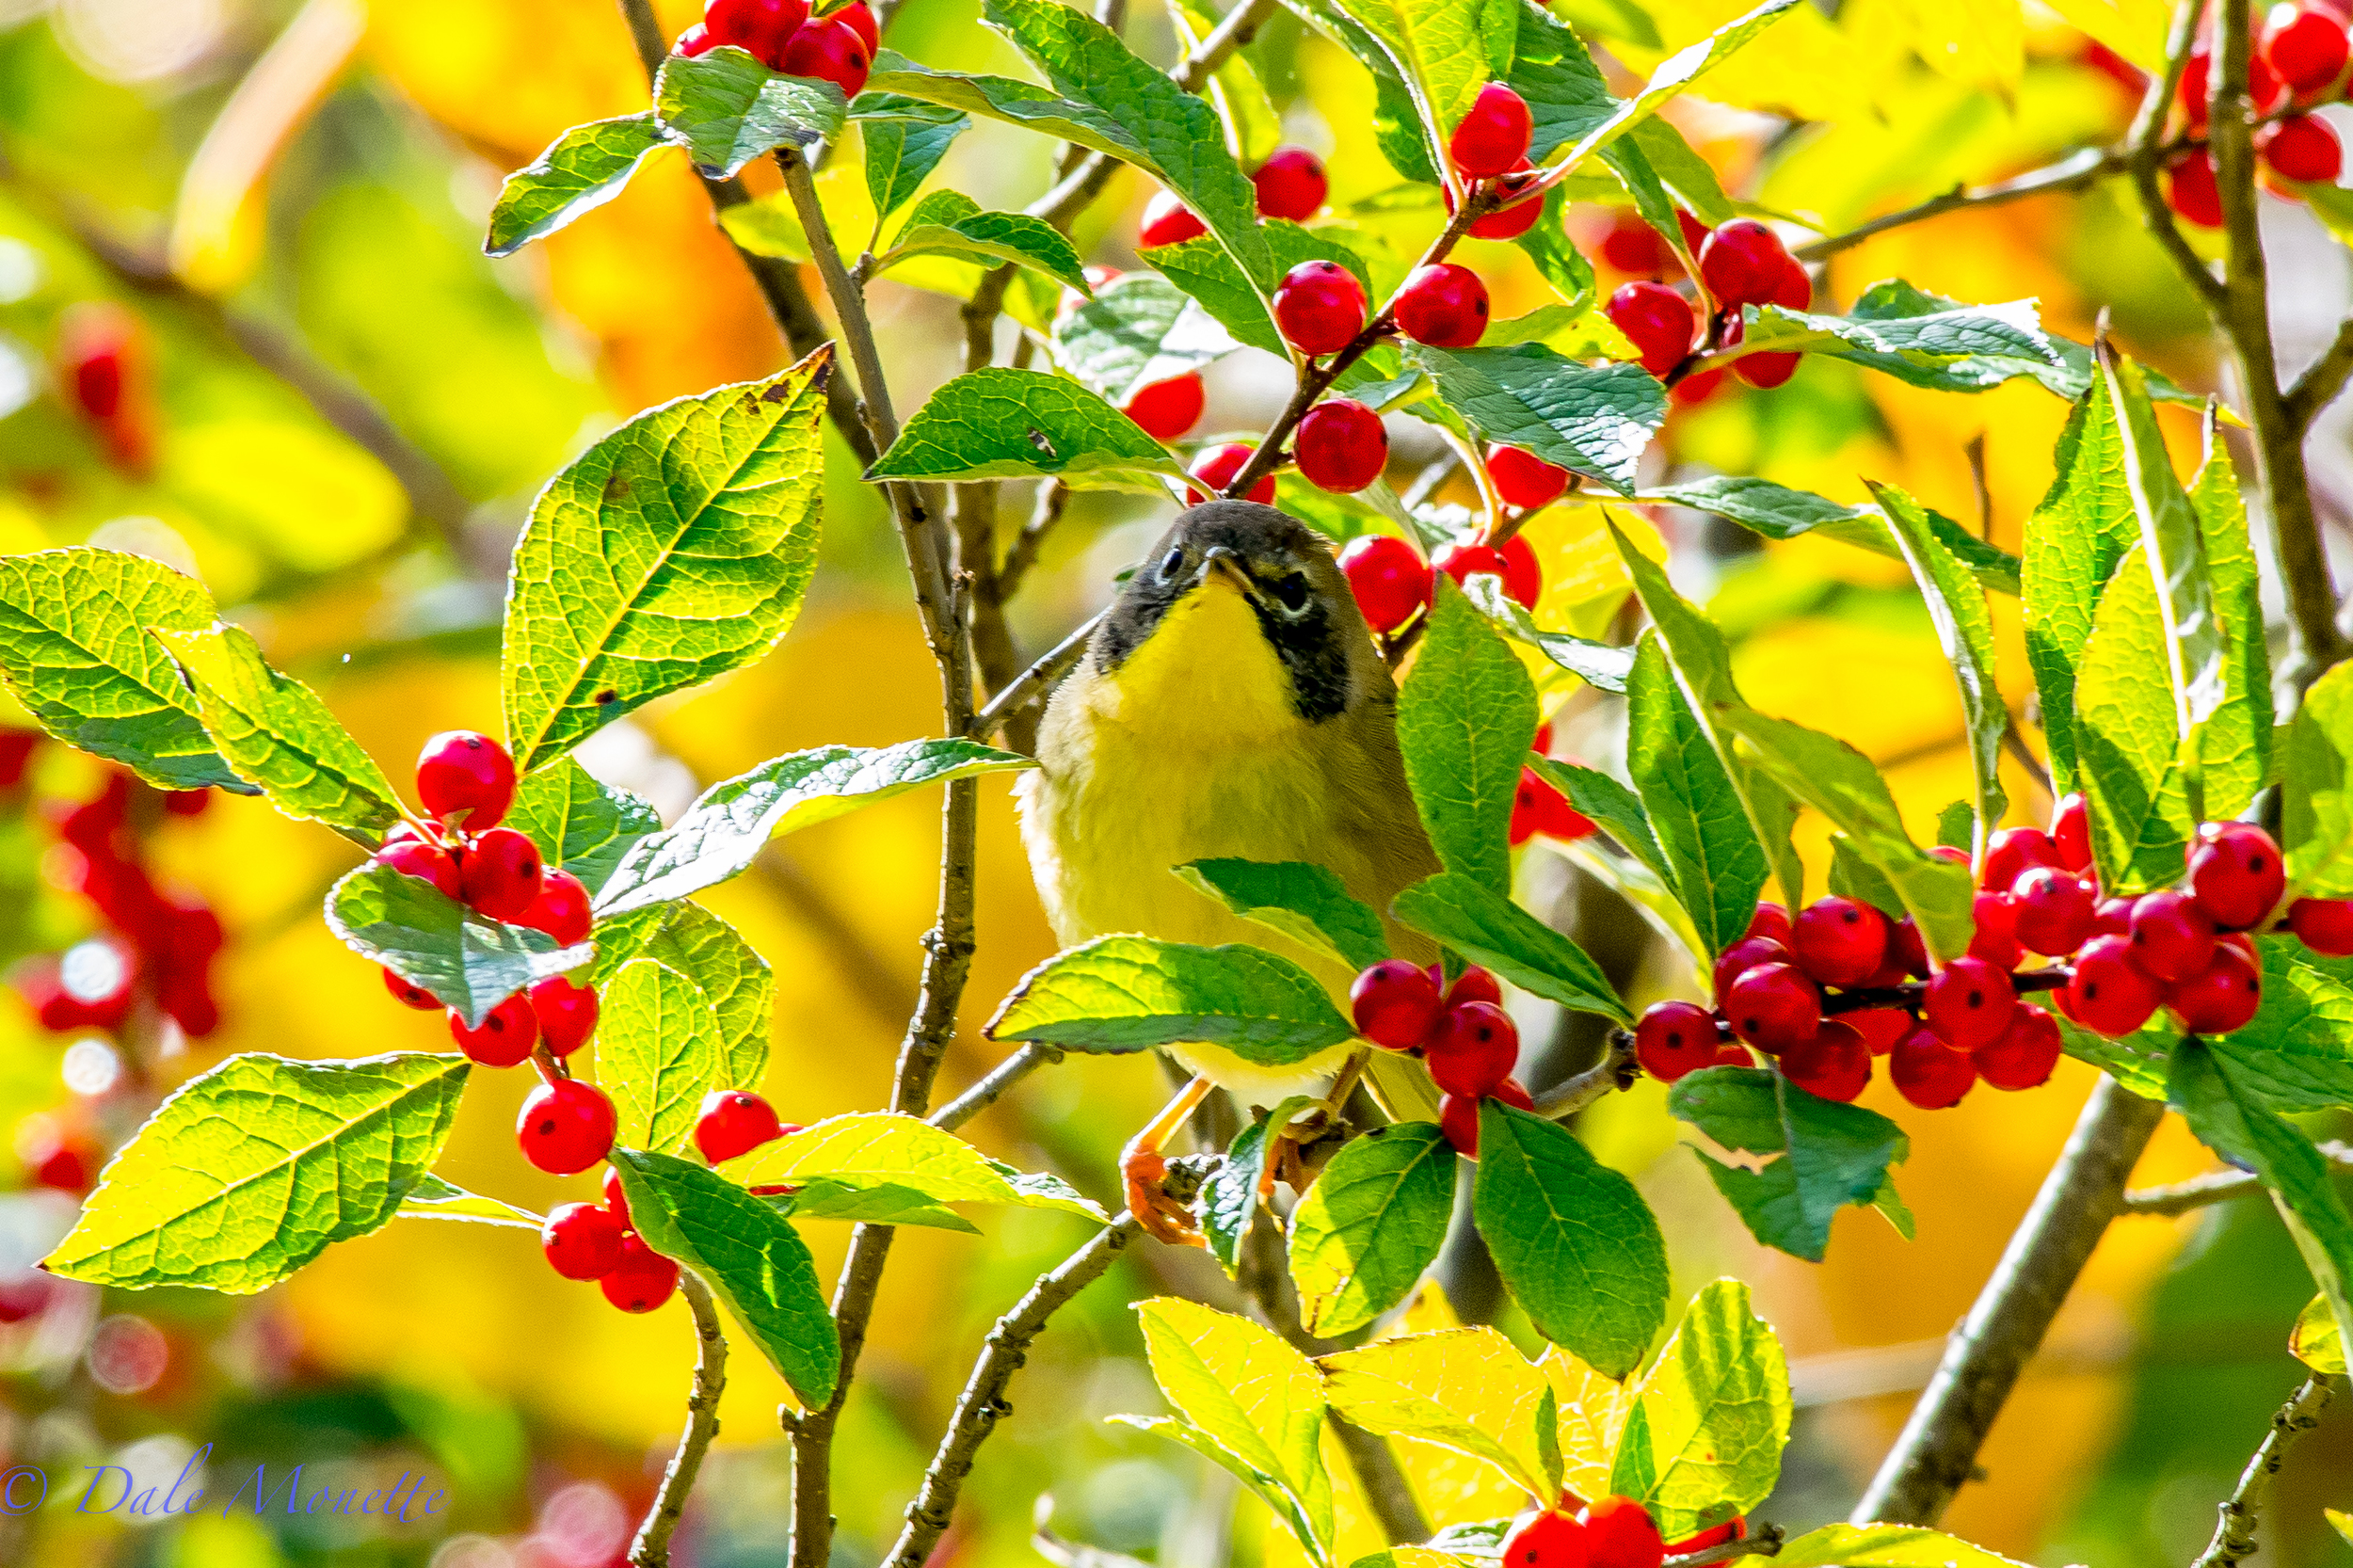 A common yellowthroat rummages through a winterberry bush looking for breakfast in early October.  10/4/15